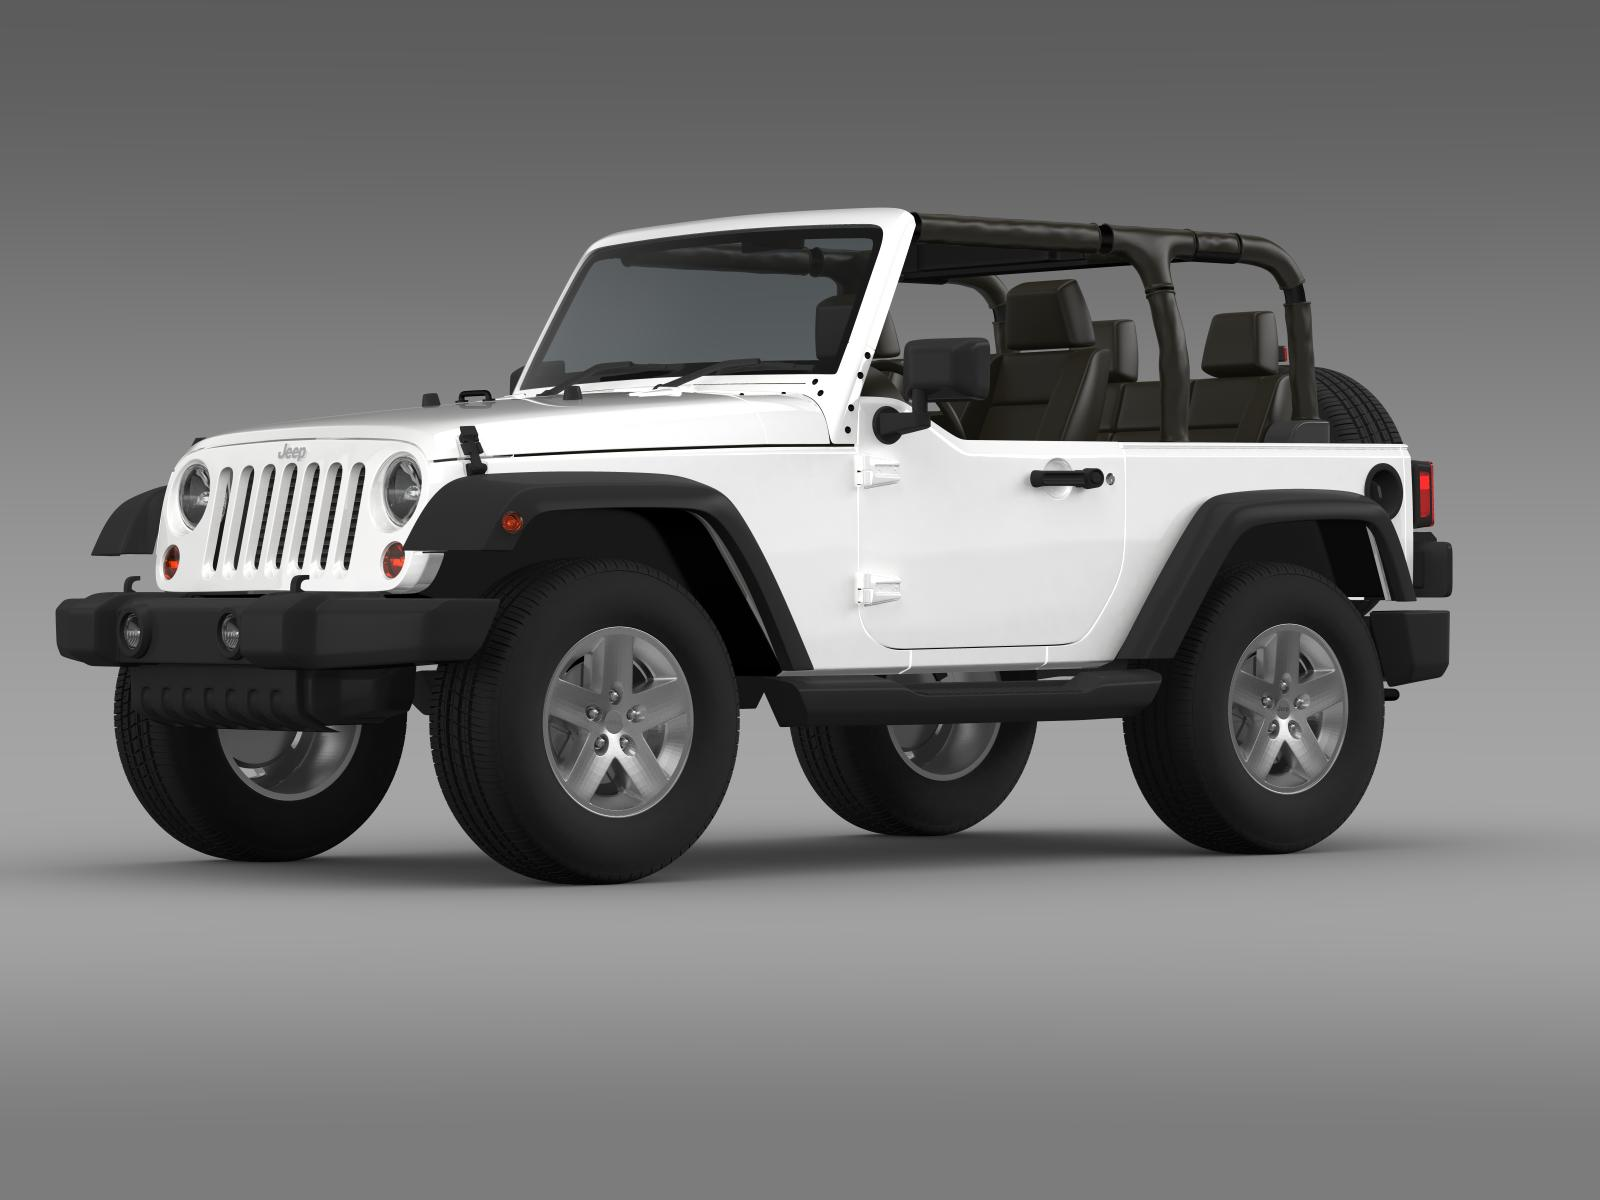 jeep wrangler islander edition 2010 3d model buy jeep. Black Bedroom Furniture Sets. Home Design Ideas